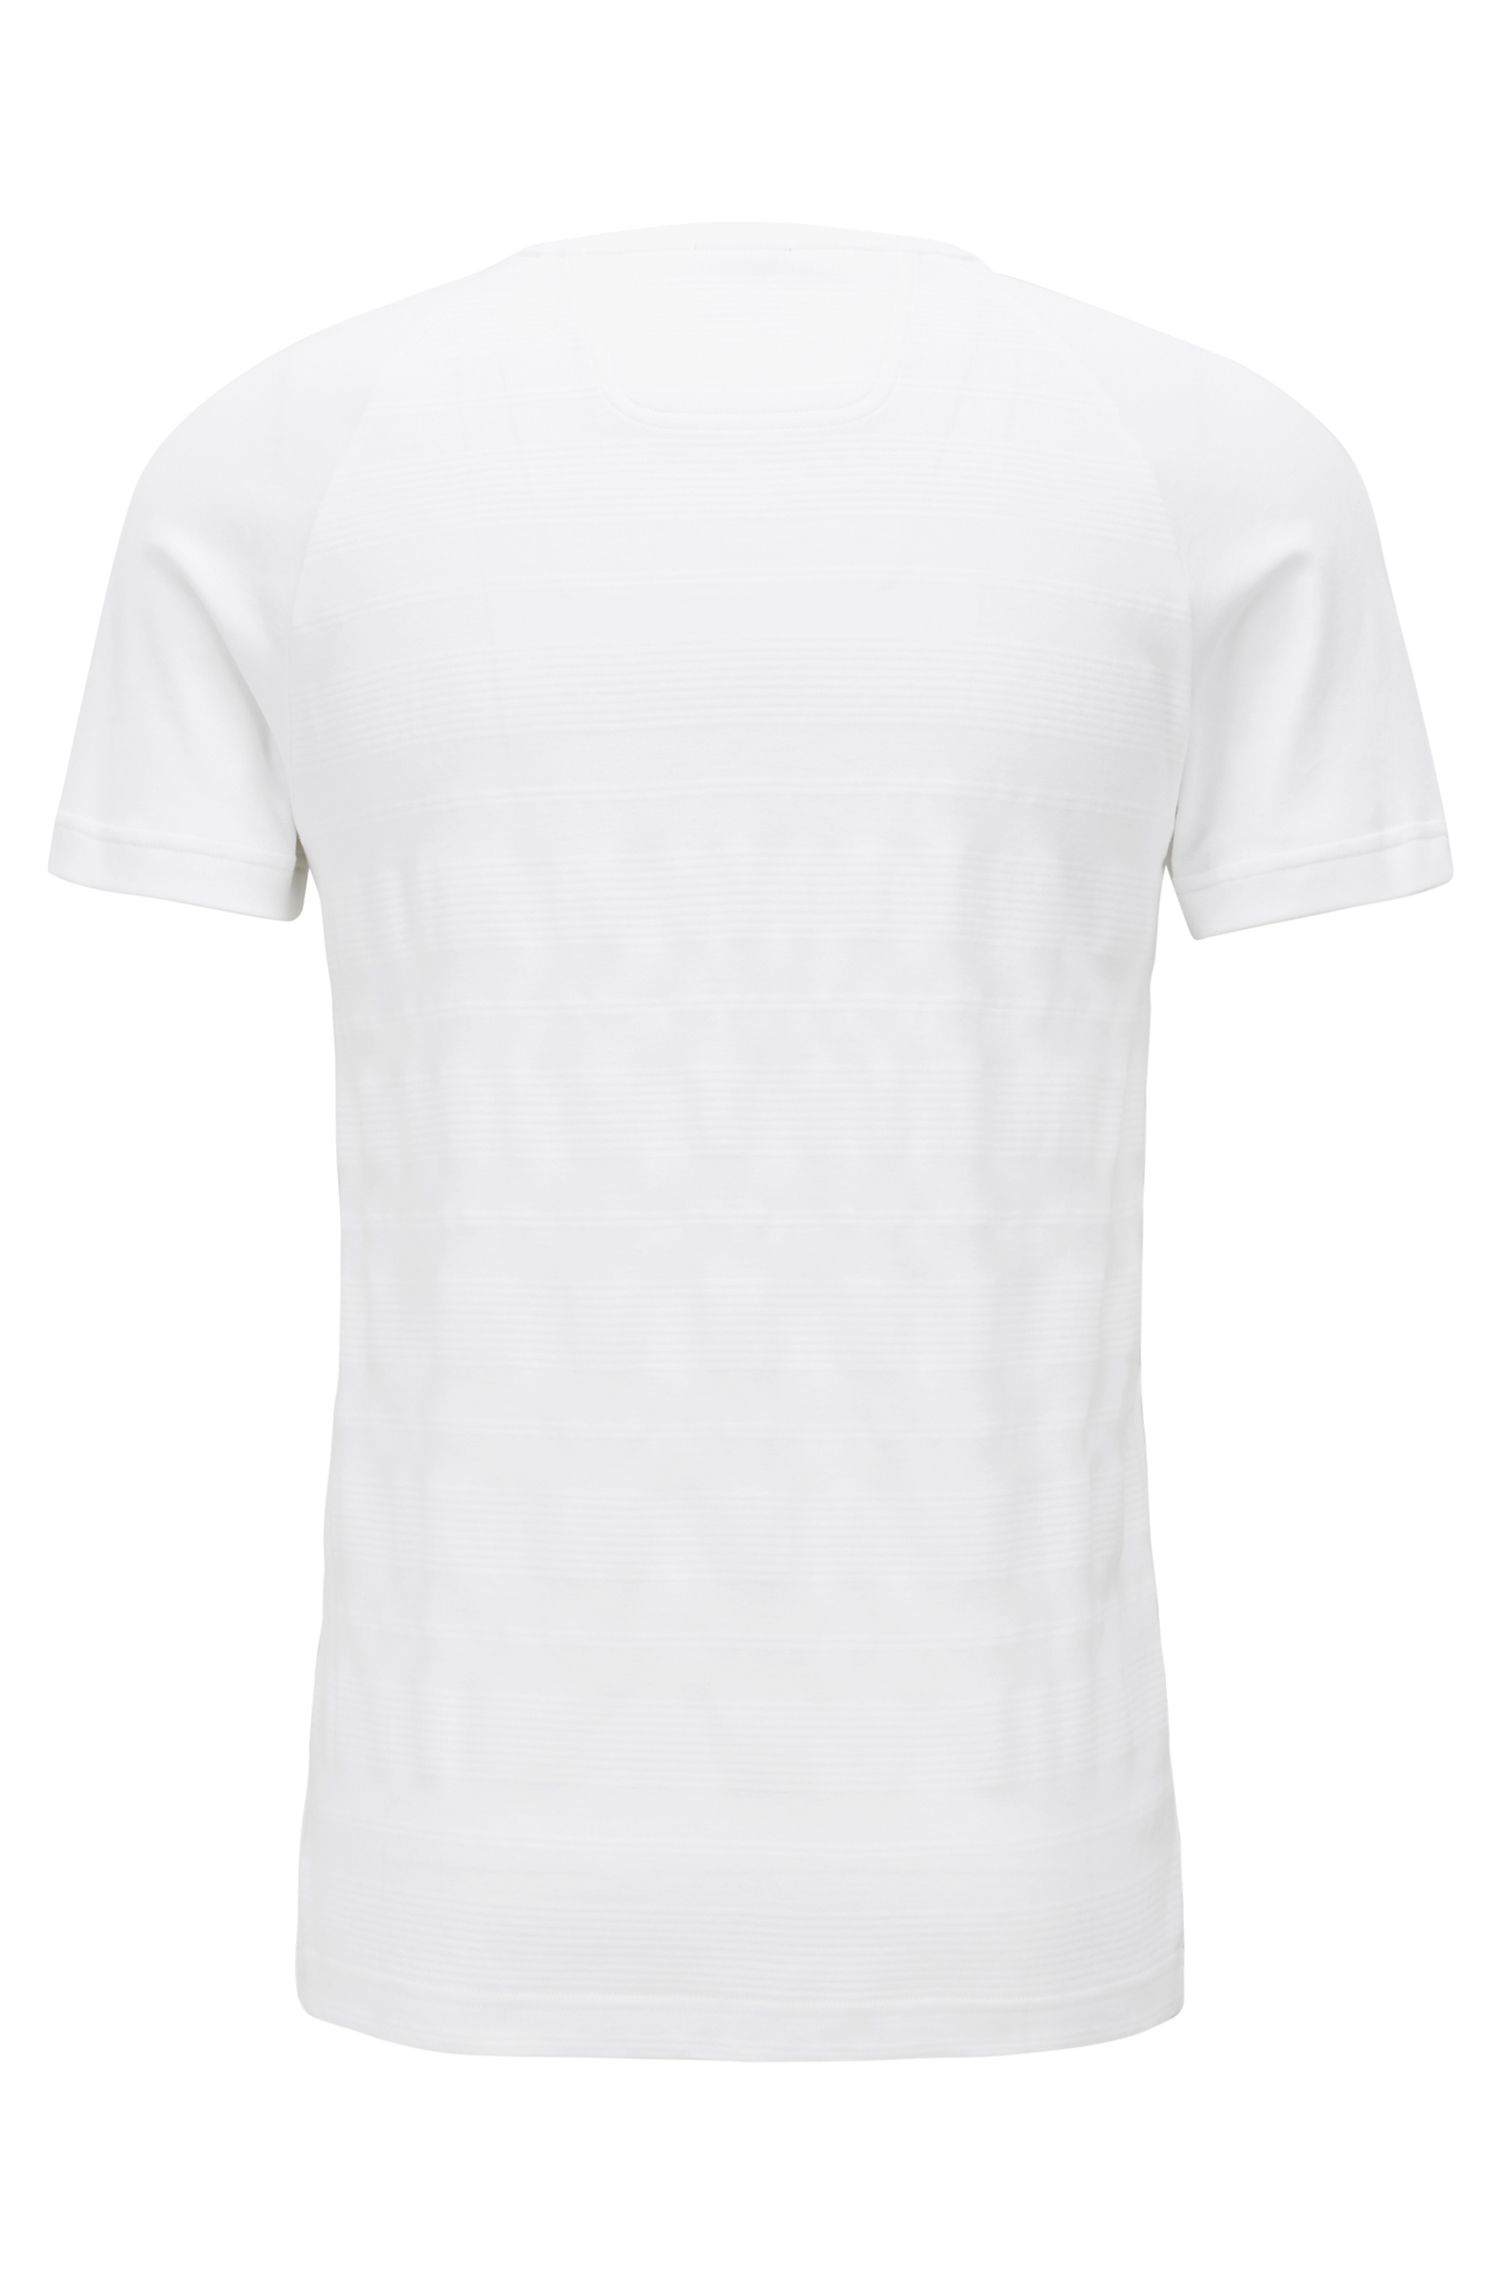 Slim-fit T-shirt in cotton with logo-tape sleeves, White